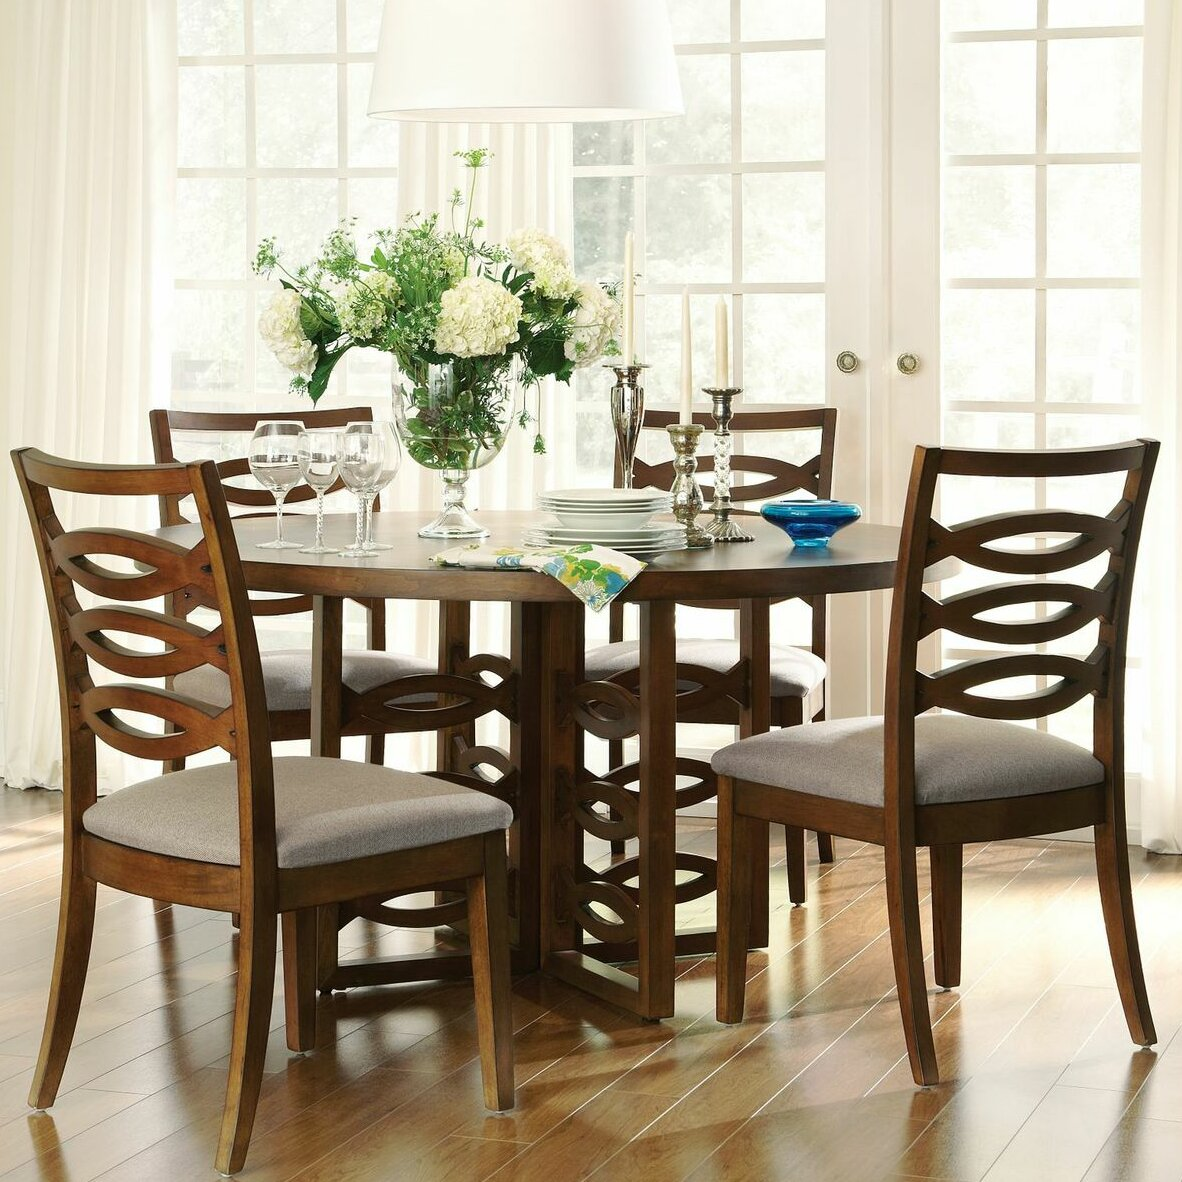 Dining Furniture 5 Piece Kitchen & Dining Room Sets Darby Home Co. Full resolution  portrait, nominally Width 1182 Height 1182 pixels, portrait with #2E7289.